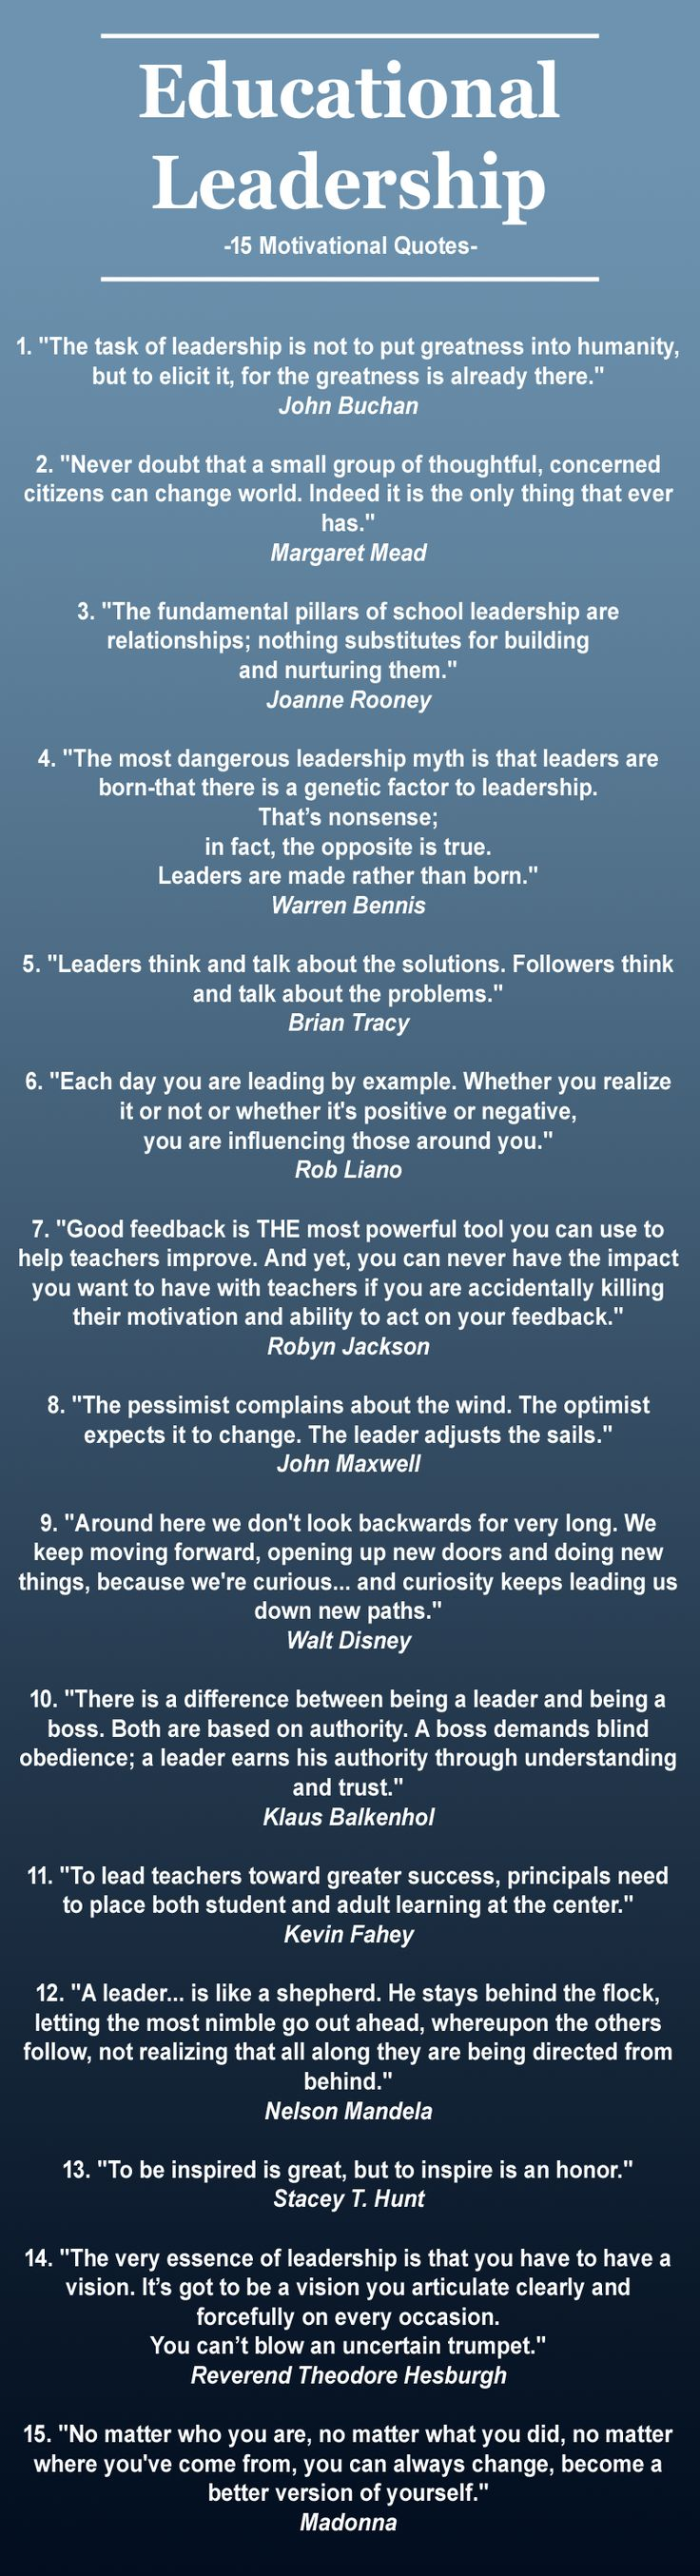 15 Motivational Quotes about Leadership selected for Educational Leaders #educationalleadership #quotes #leadershipquotes